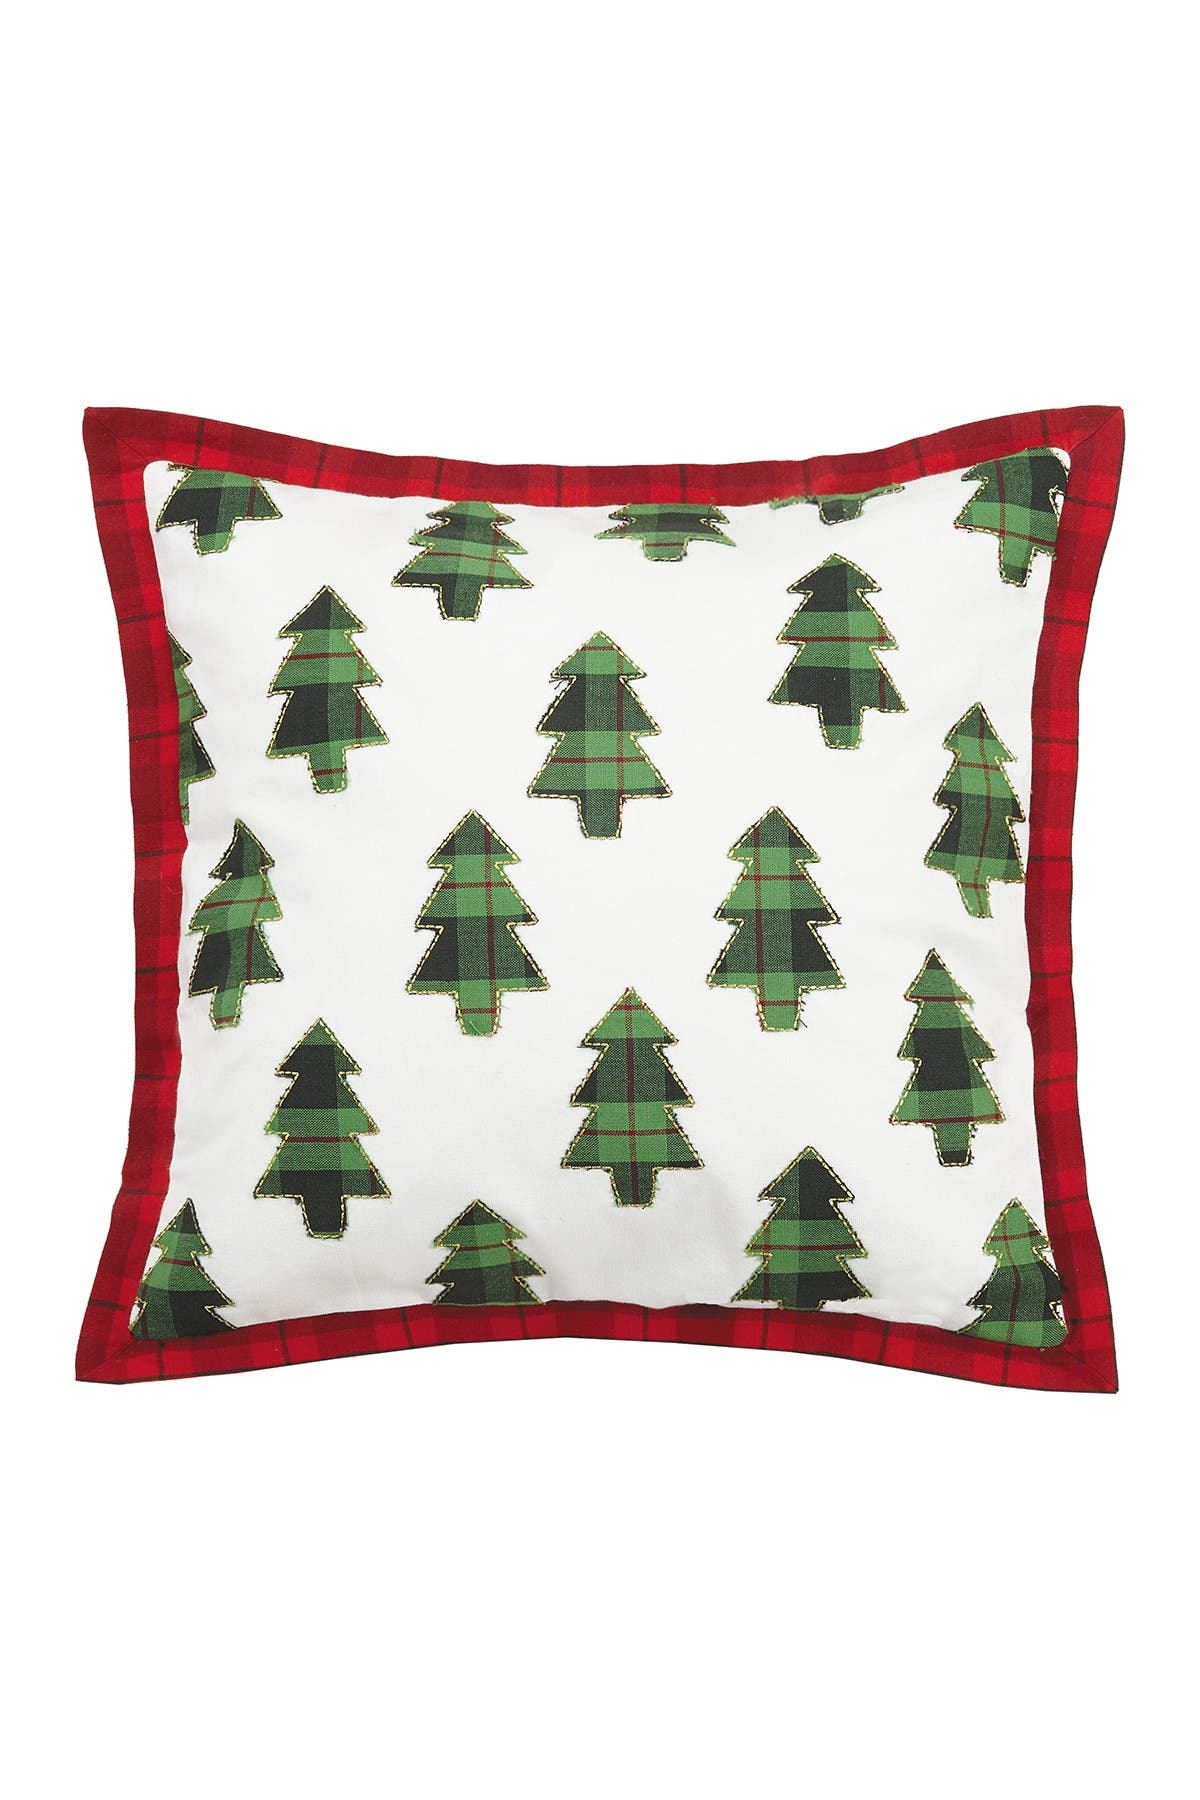 Image of Peking Handicraft Multi Plaid Trees Applique Embroidered Pillow